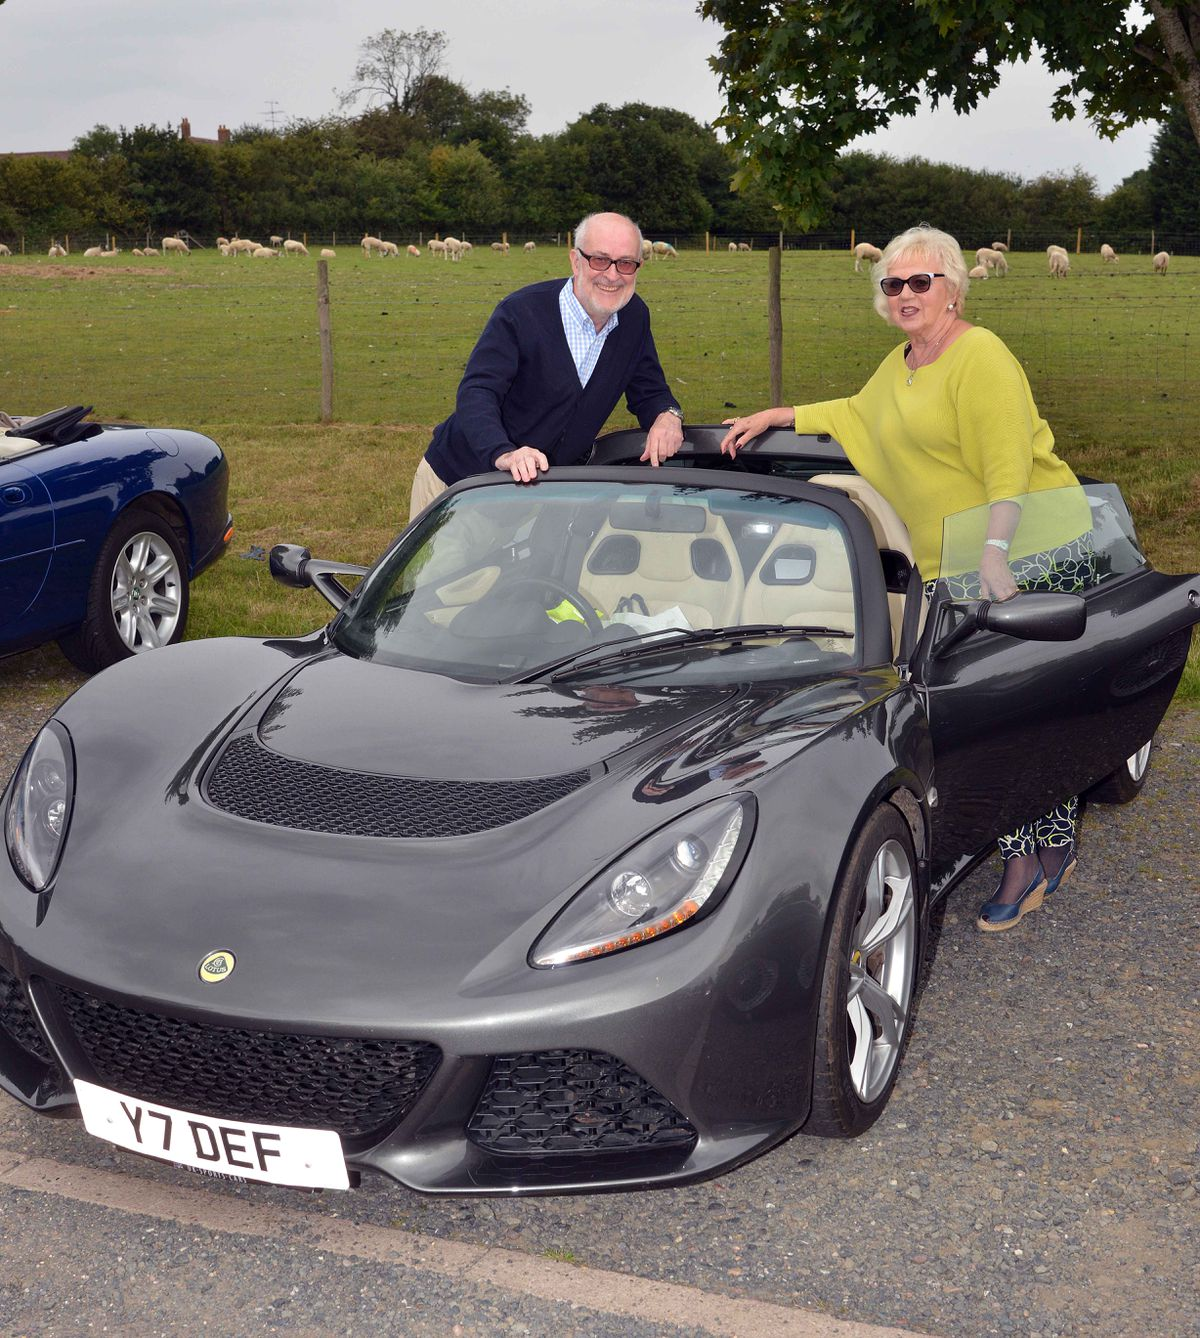 Martin Jones and Maggie Moss in a lovely 2016 Lotus Elise